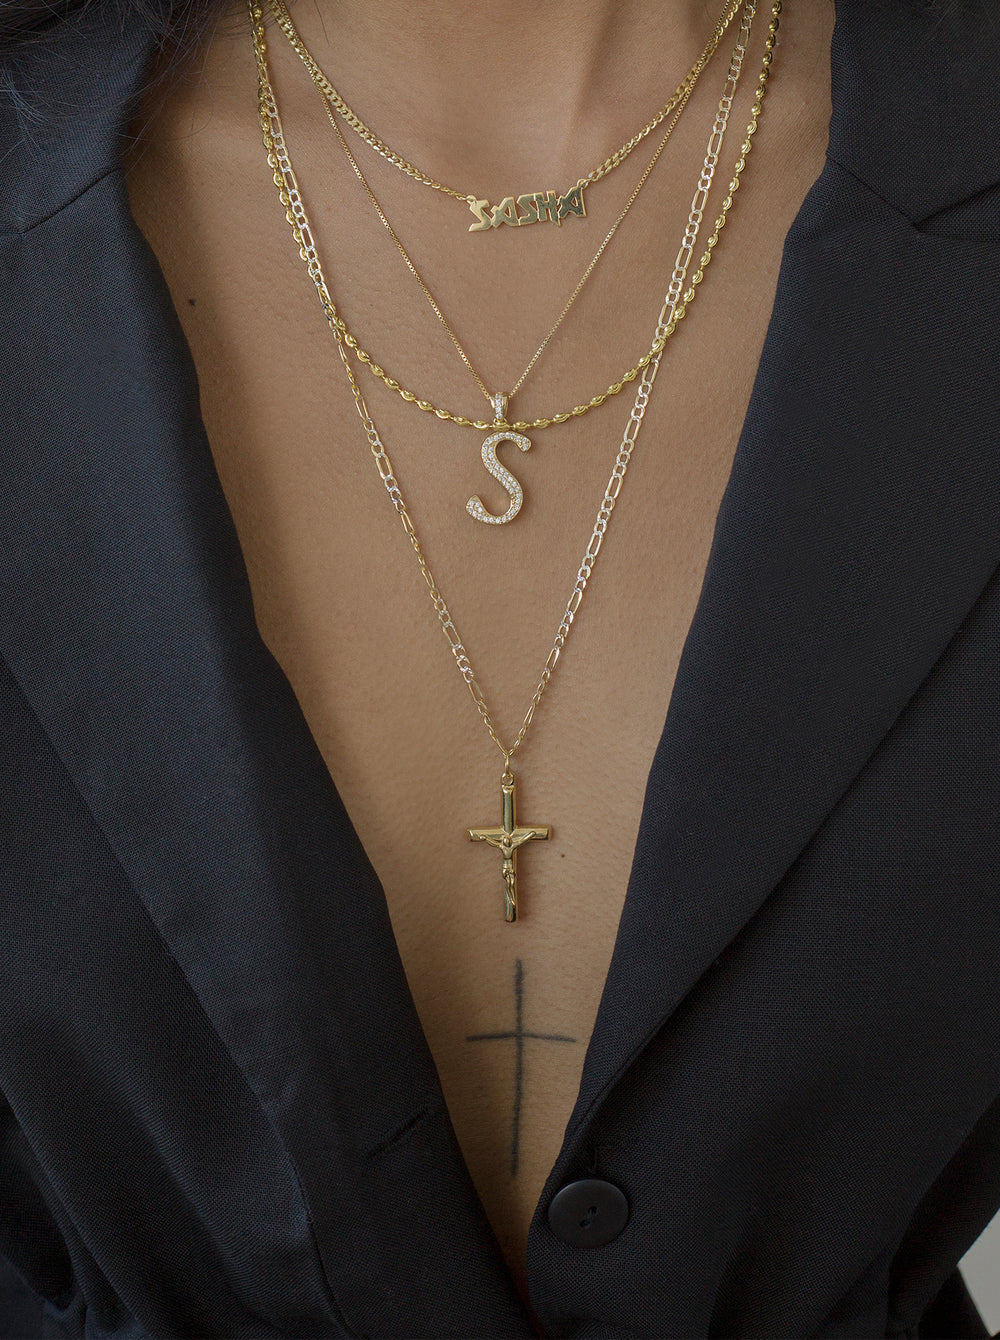 THE CRUCIFIX NECKLACE